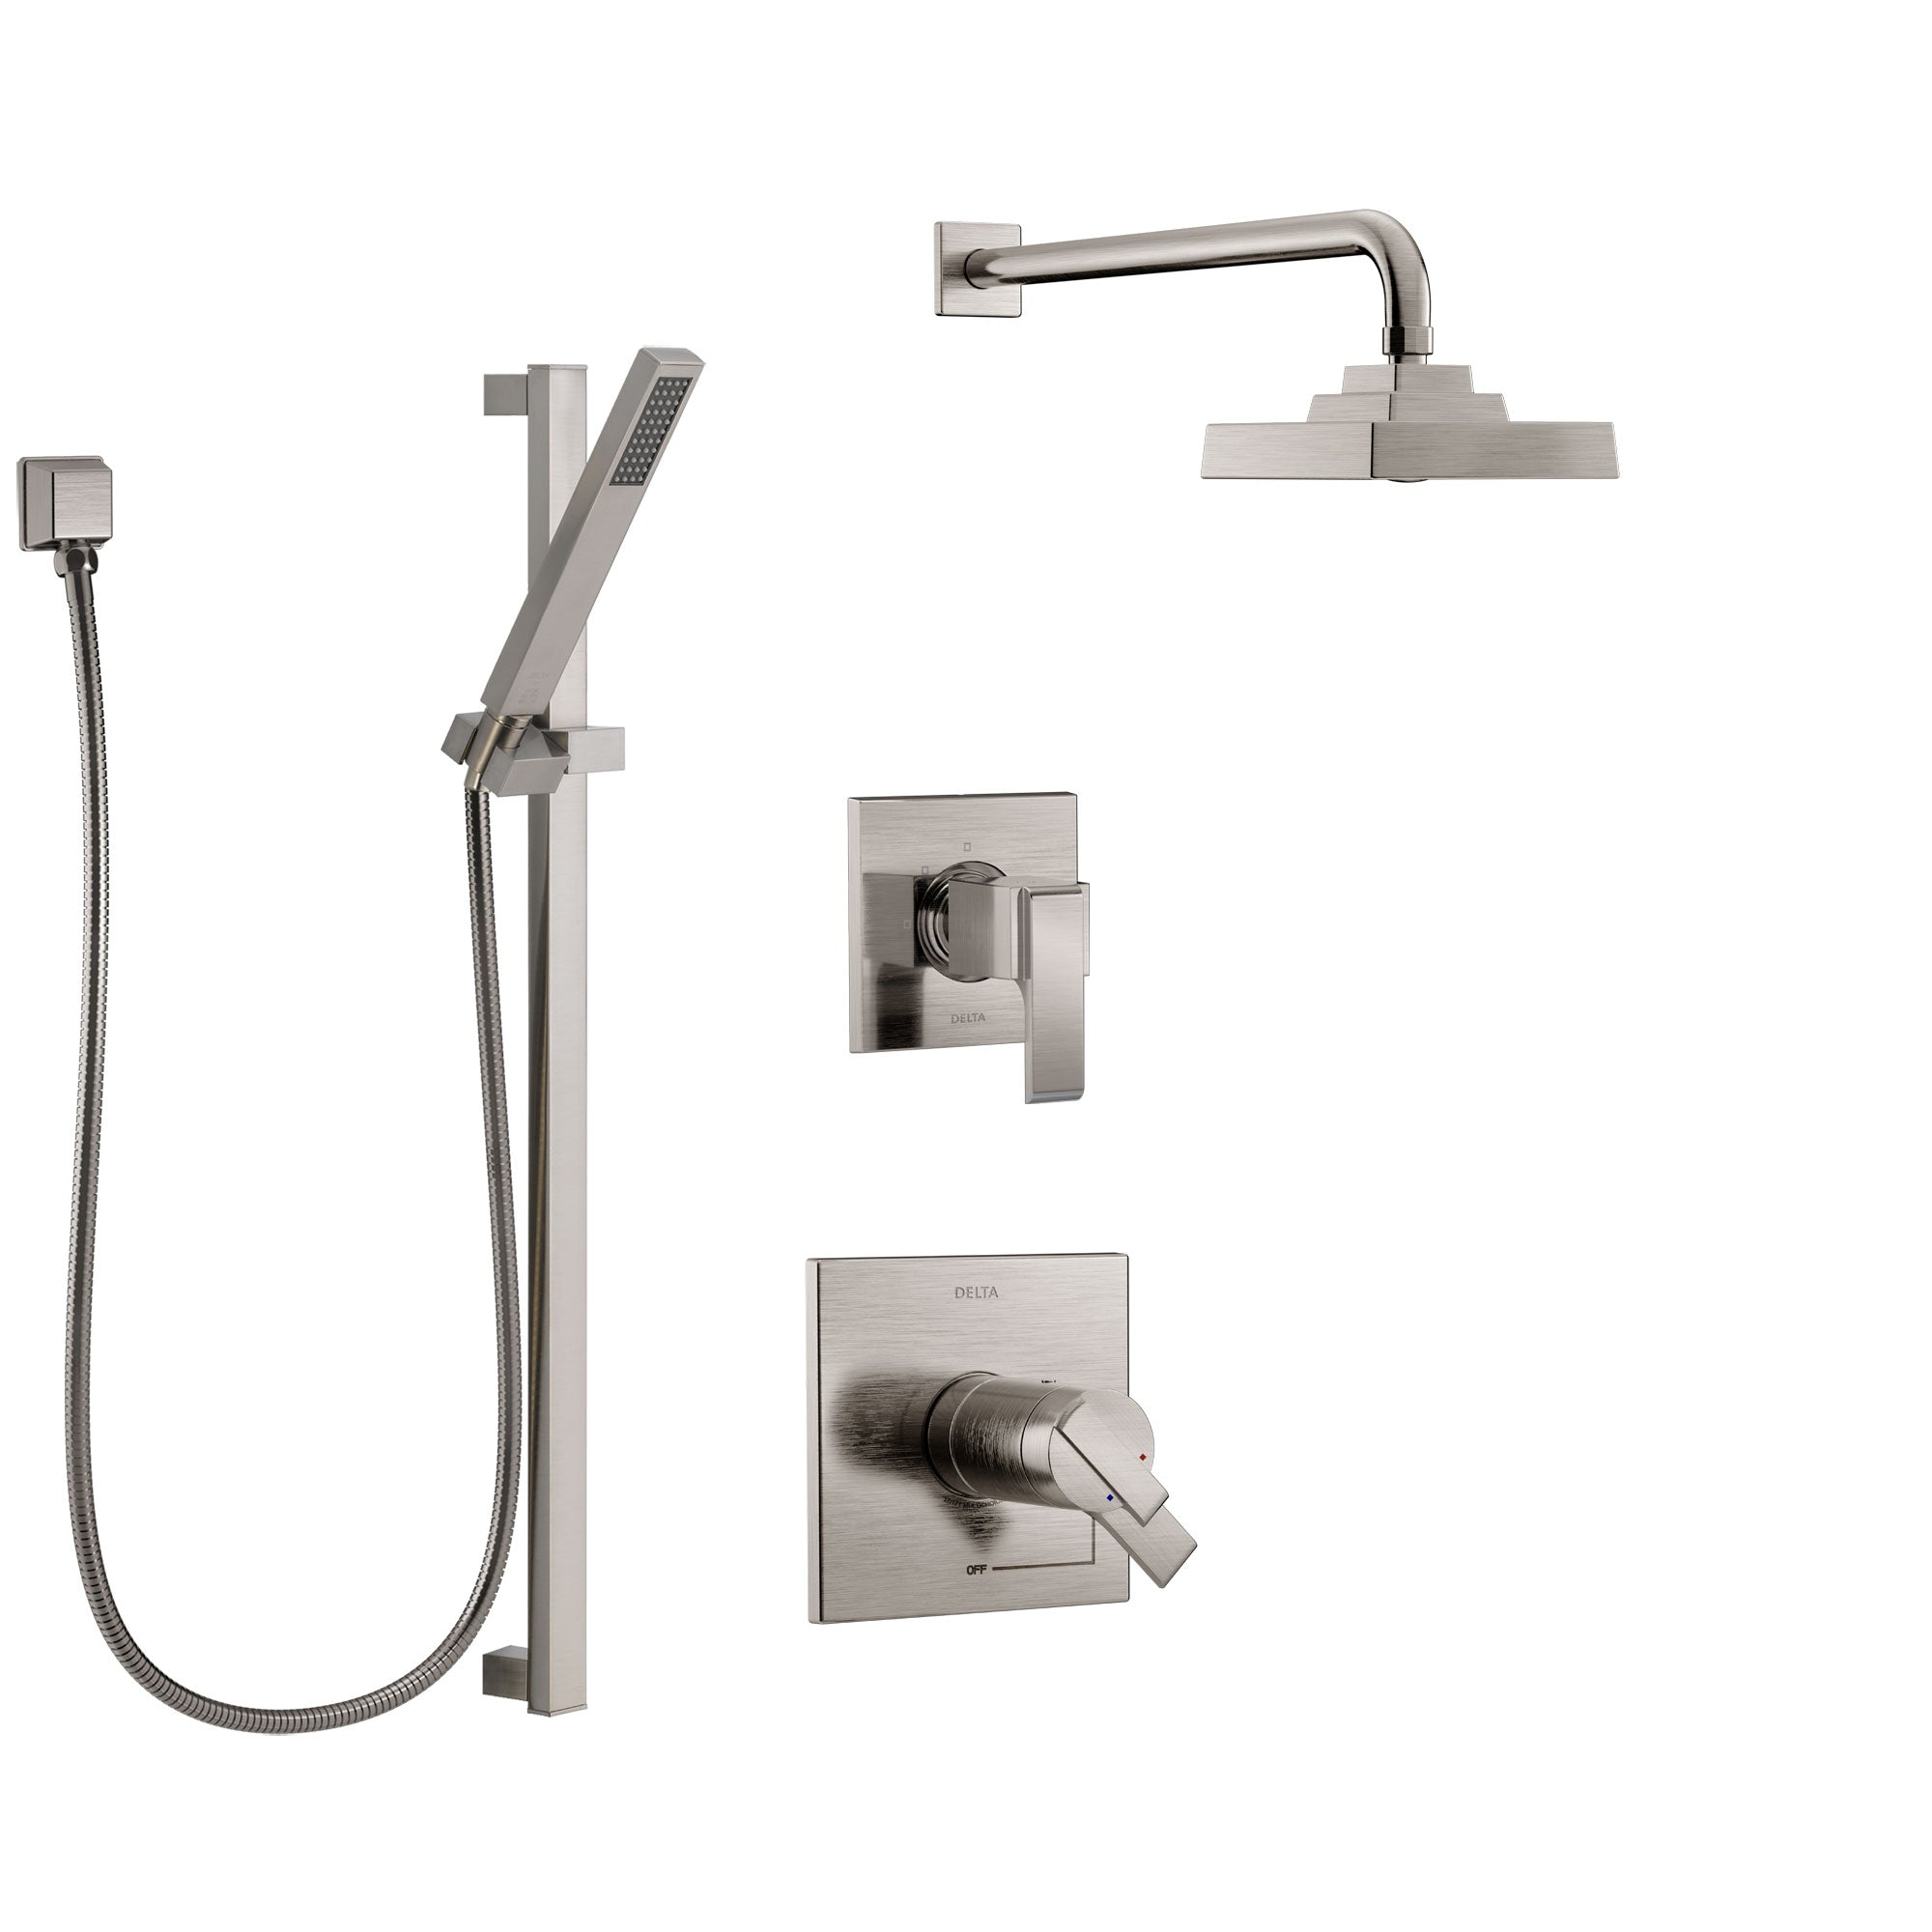 Delta Ara Dual Thermostatic Control Handle Stainless Steel Finish Shower System, Diverter, Showerhead, and Hand Shower with Slidebar SS17T2672SS5